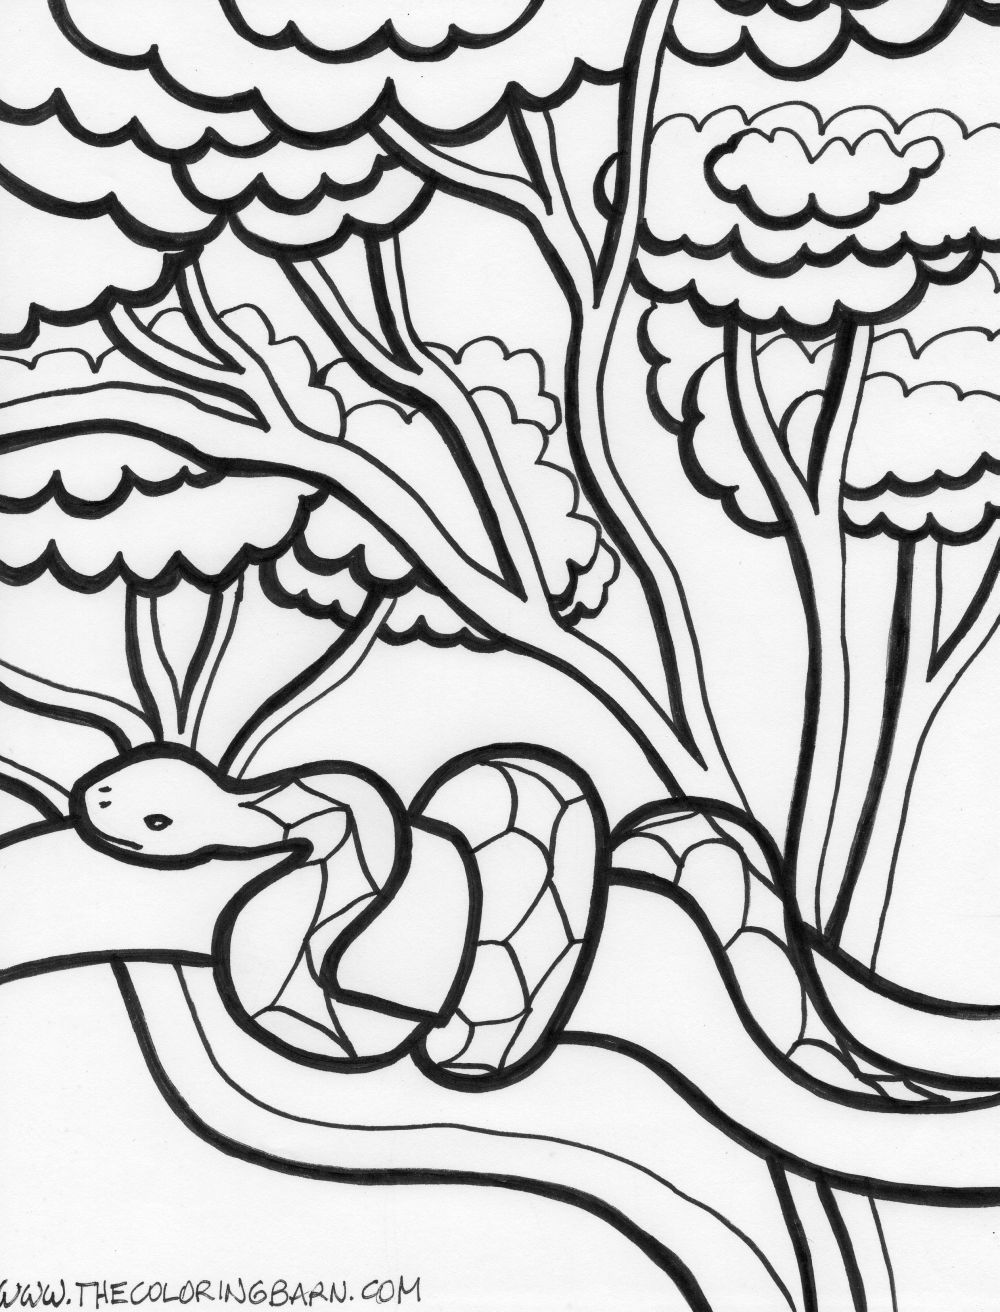 free printable coloring pages coloring pages for kids kids coloring colouring rainforest preschool color sheets forest animals rainforests snake